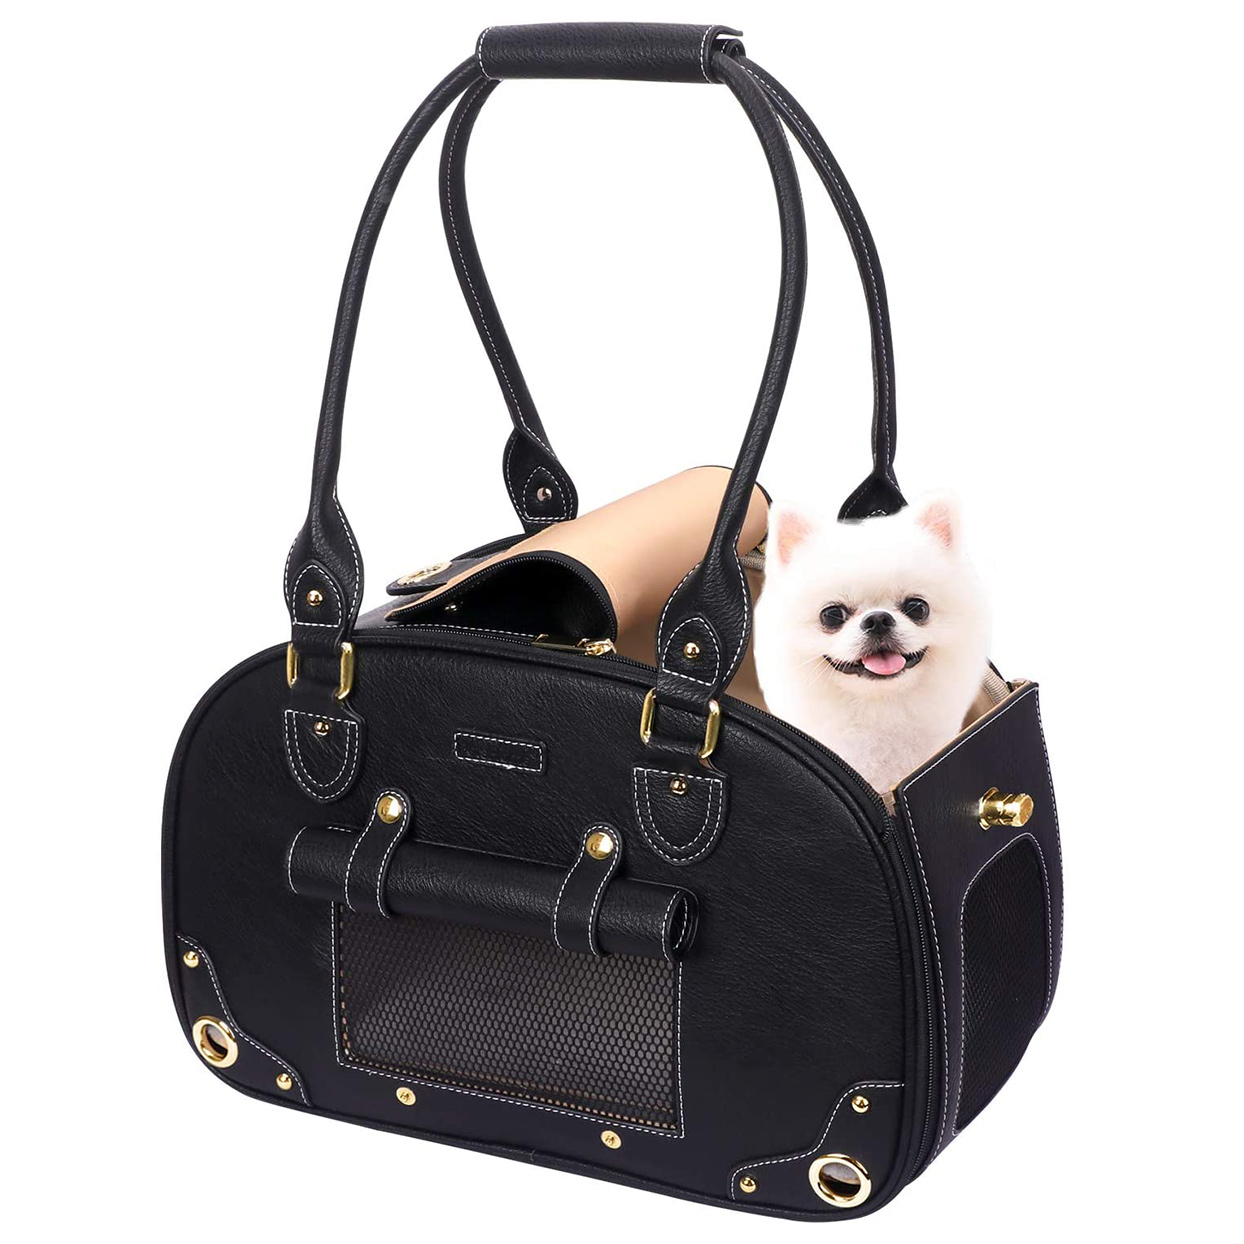 PetsHome Dog Carrier Purse, Pet Carrier, Cat Carrier, Foldable Waterproof Premium Leather Pet Purse Portable Bag Carrier for Cat and Small Dog Home & Outdoor on a white background